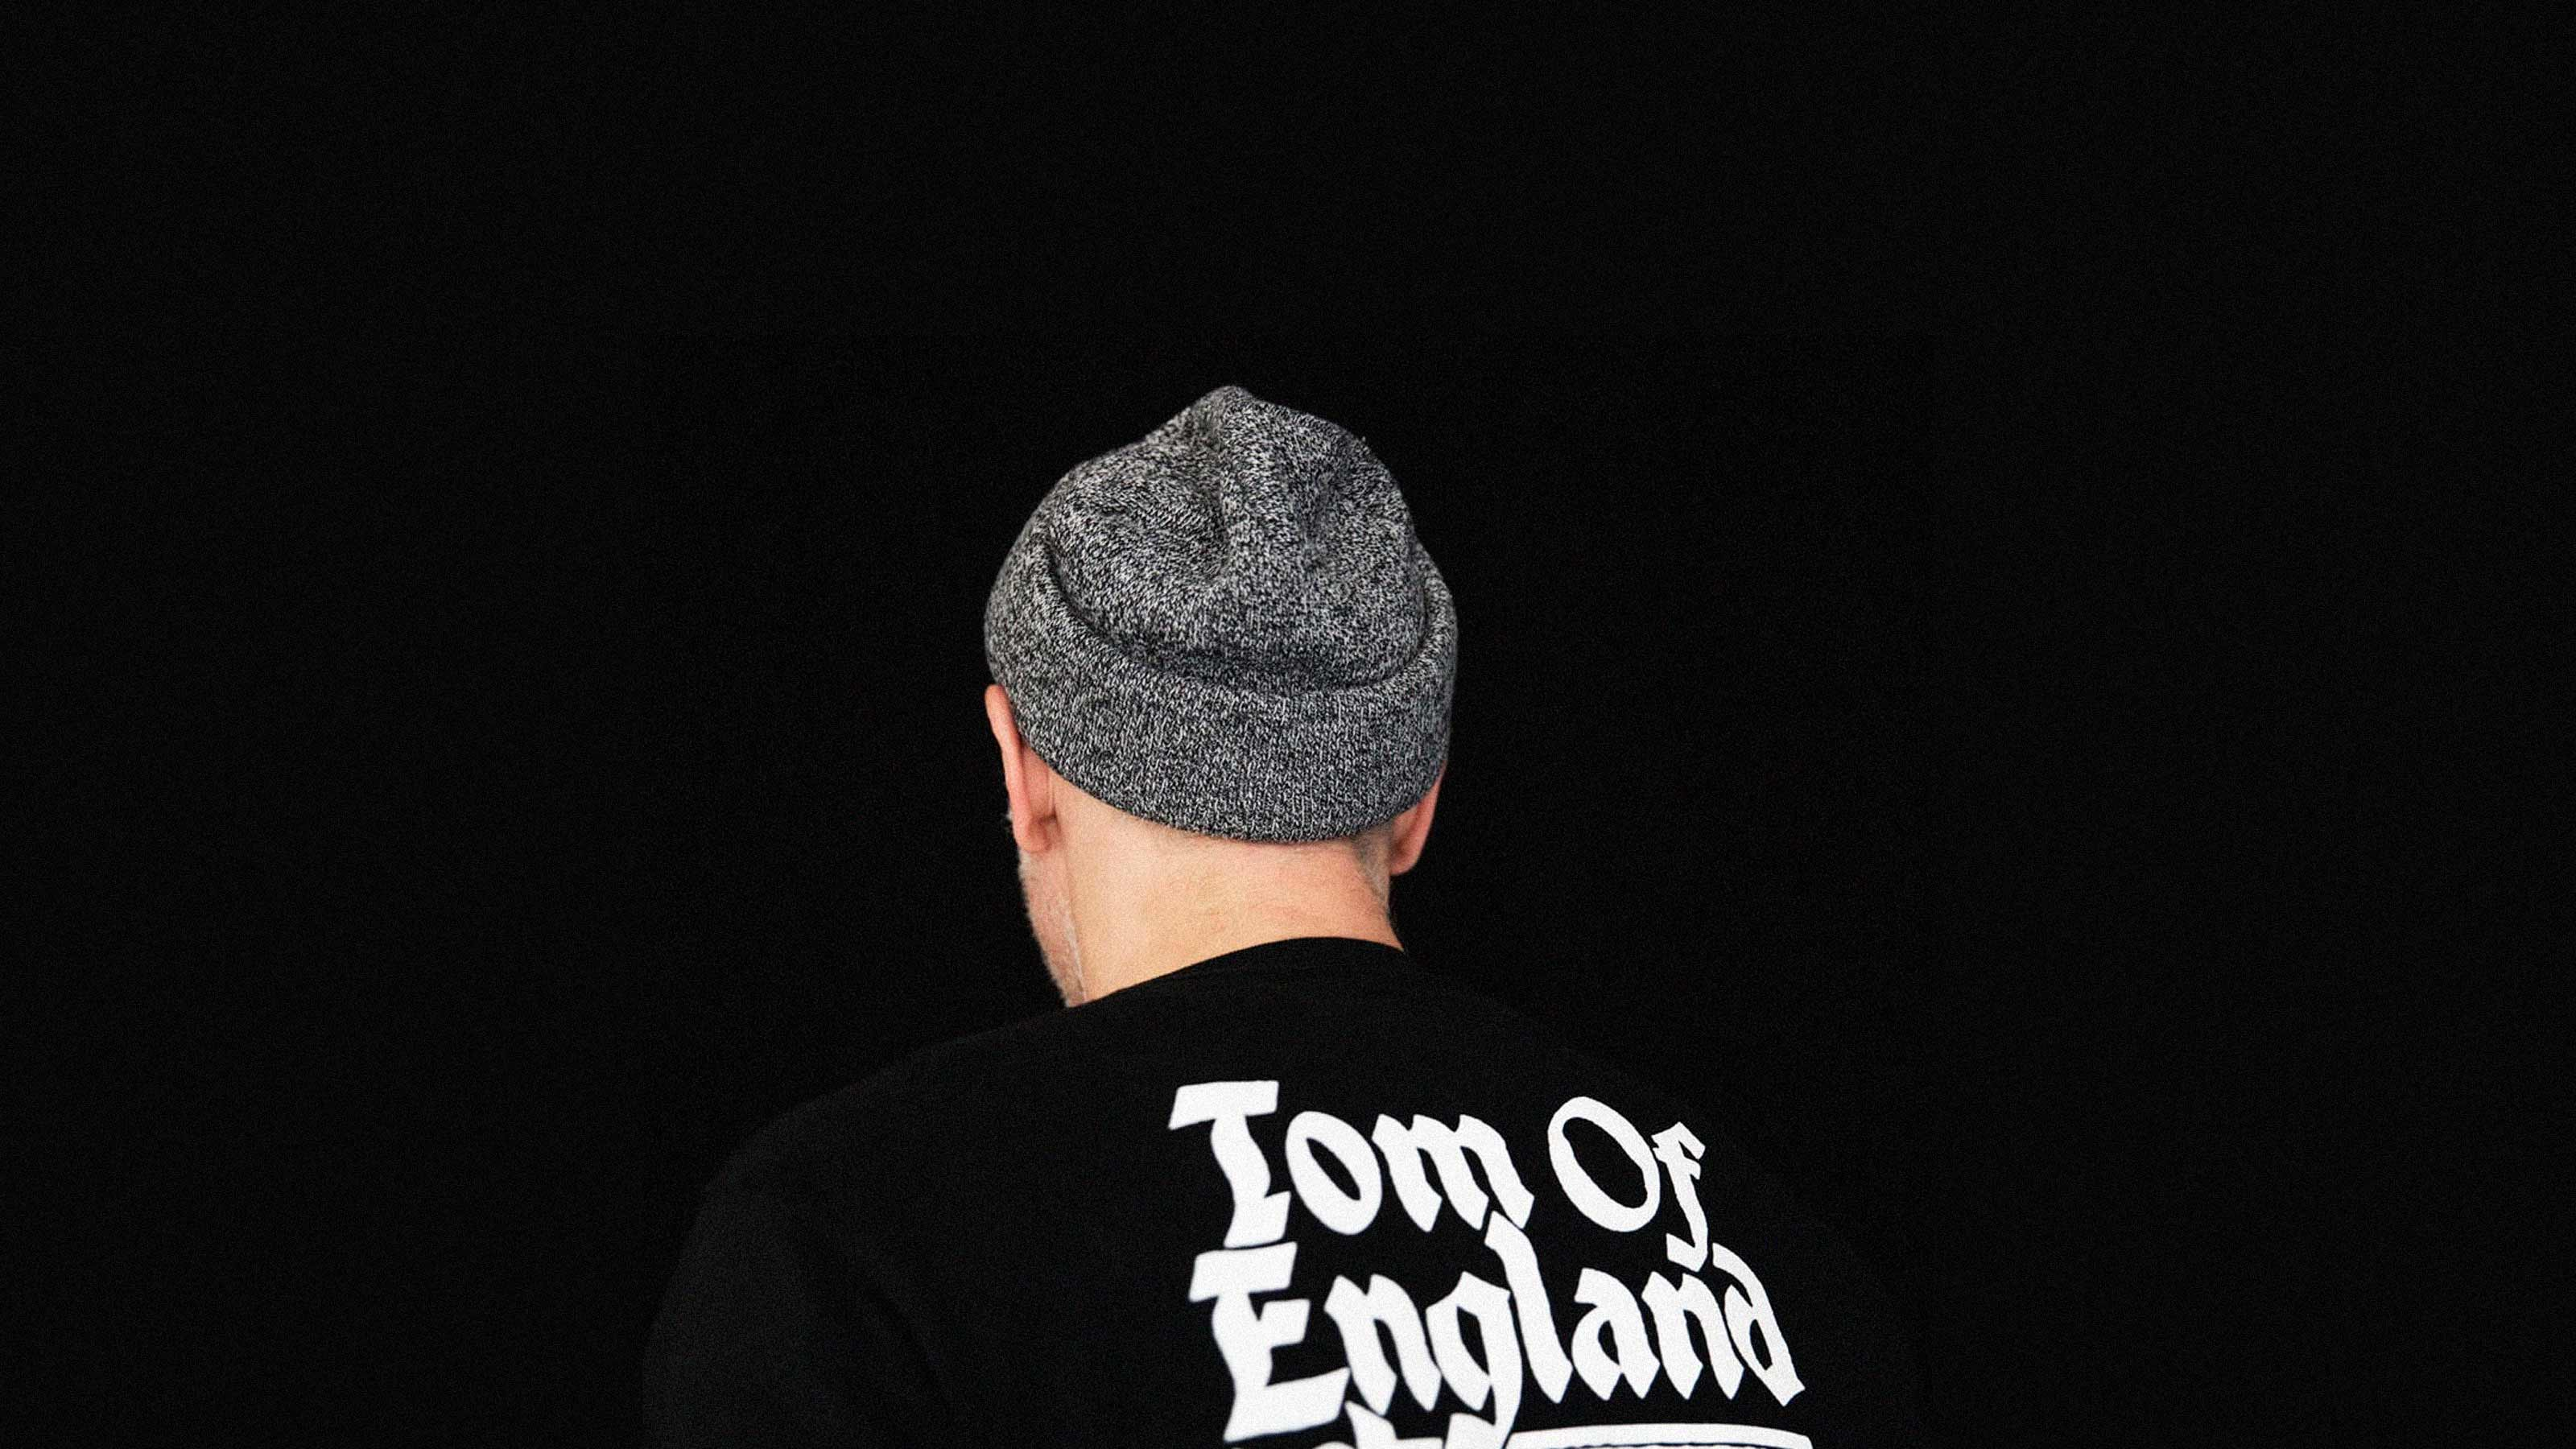 Tom of England